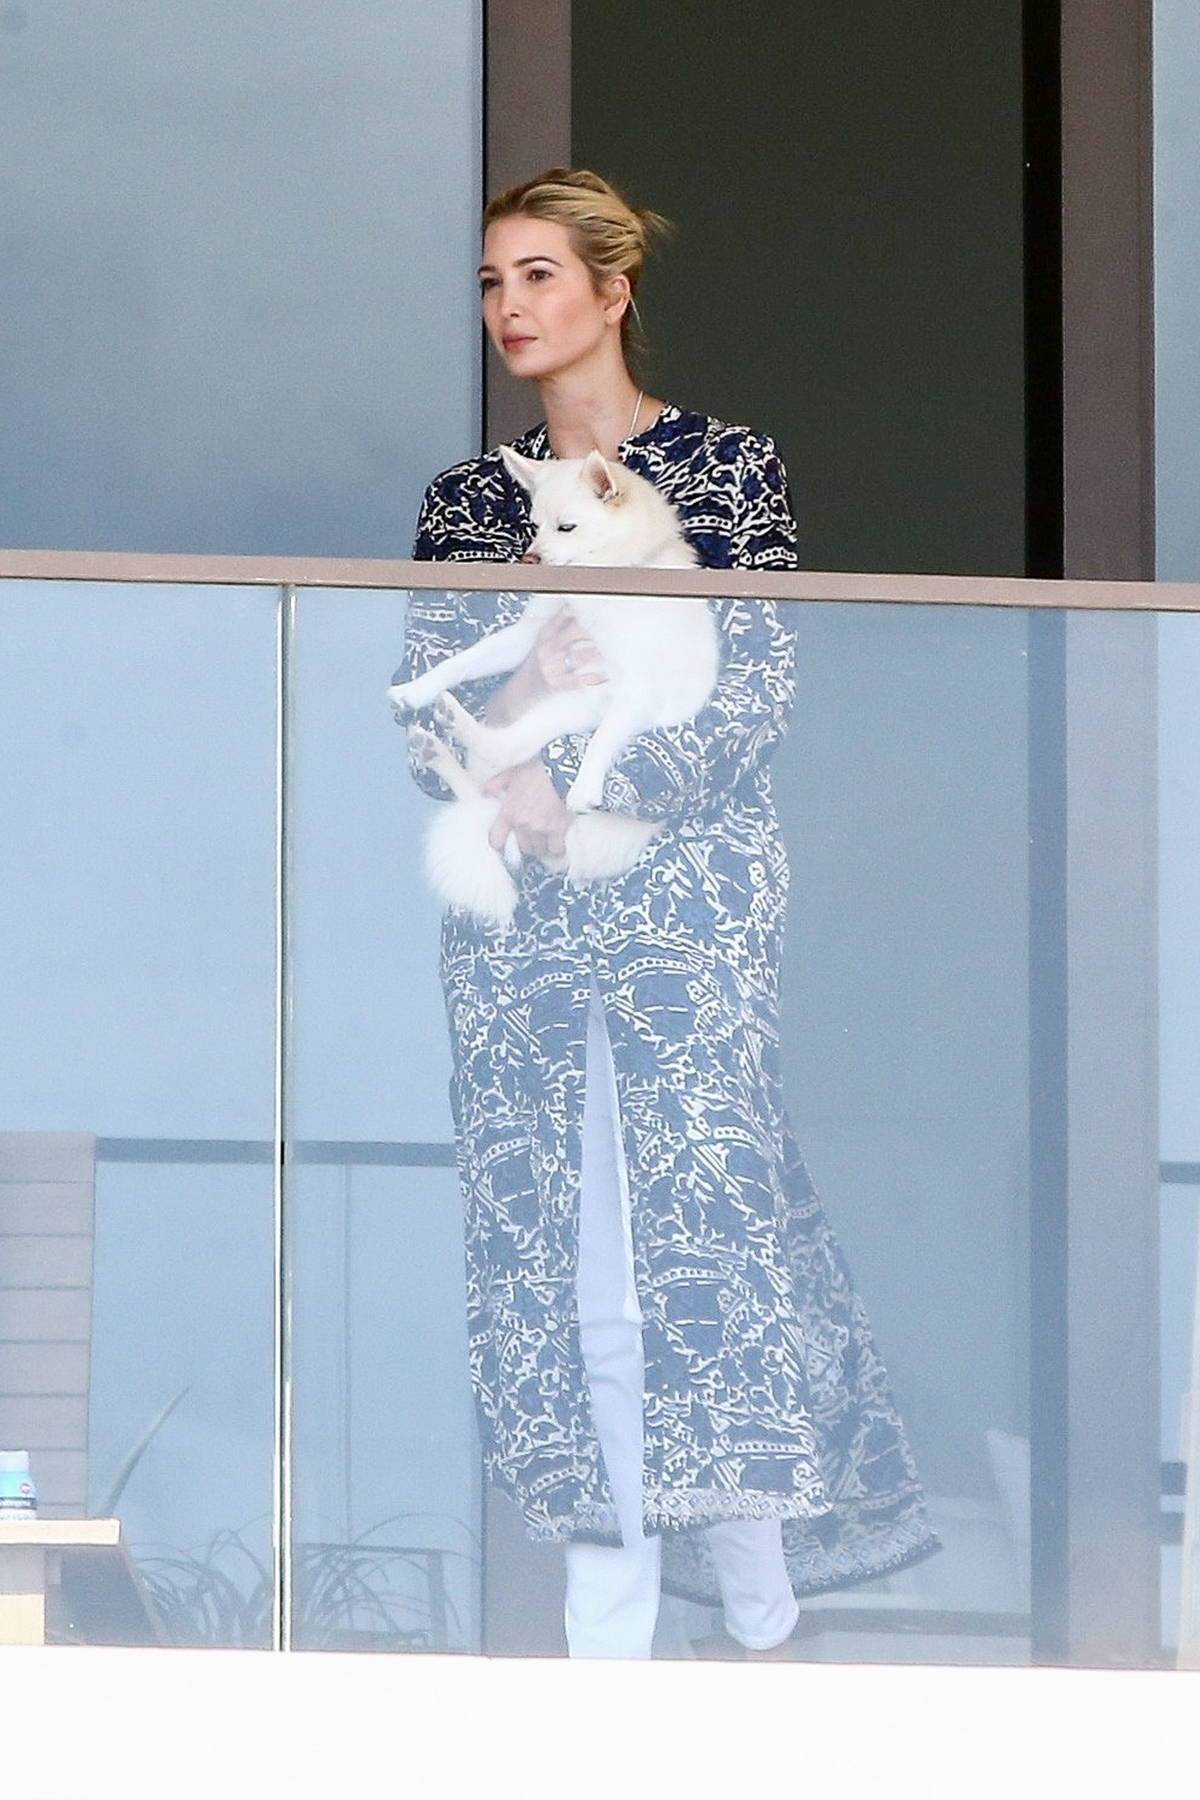 Ivanka Trump seen chilling with her dog on the balcony of her apartment in Miami Beach, Florida